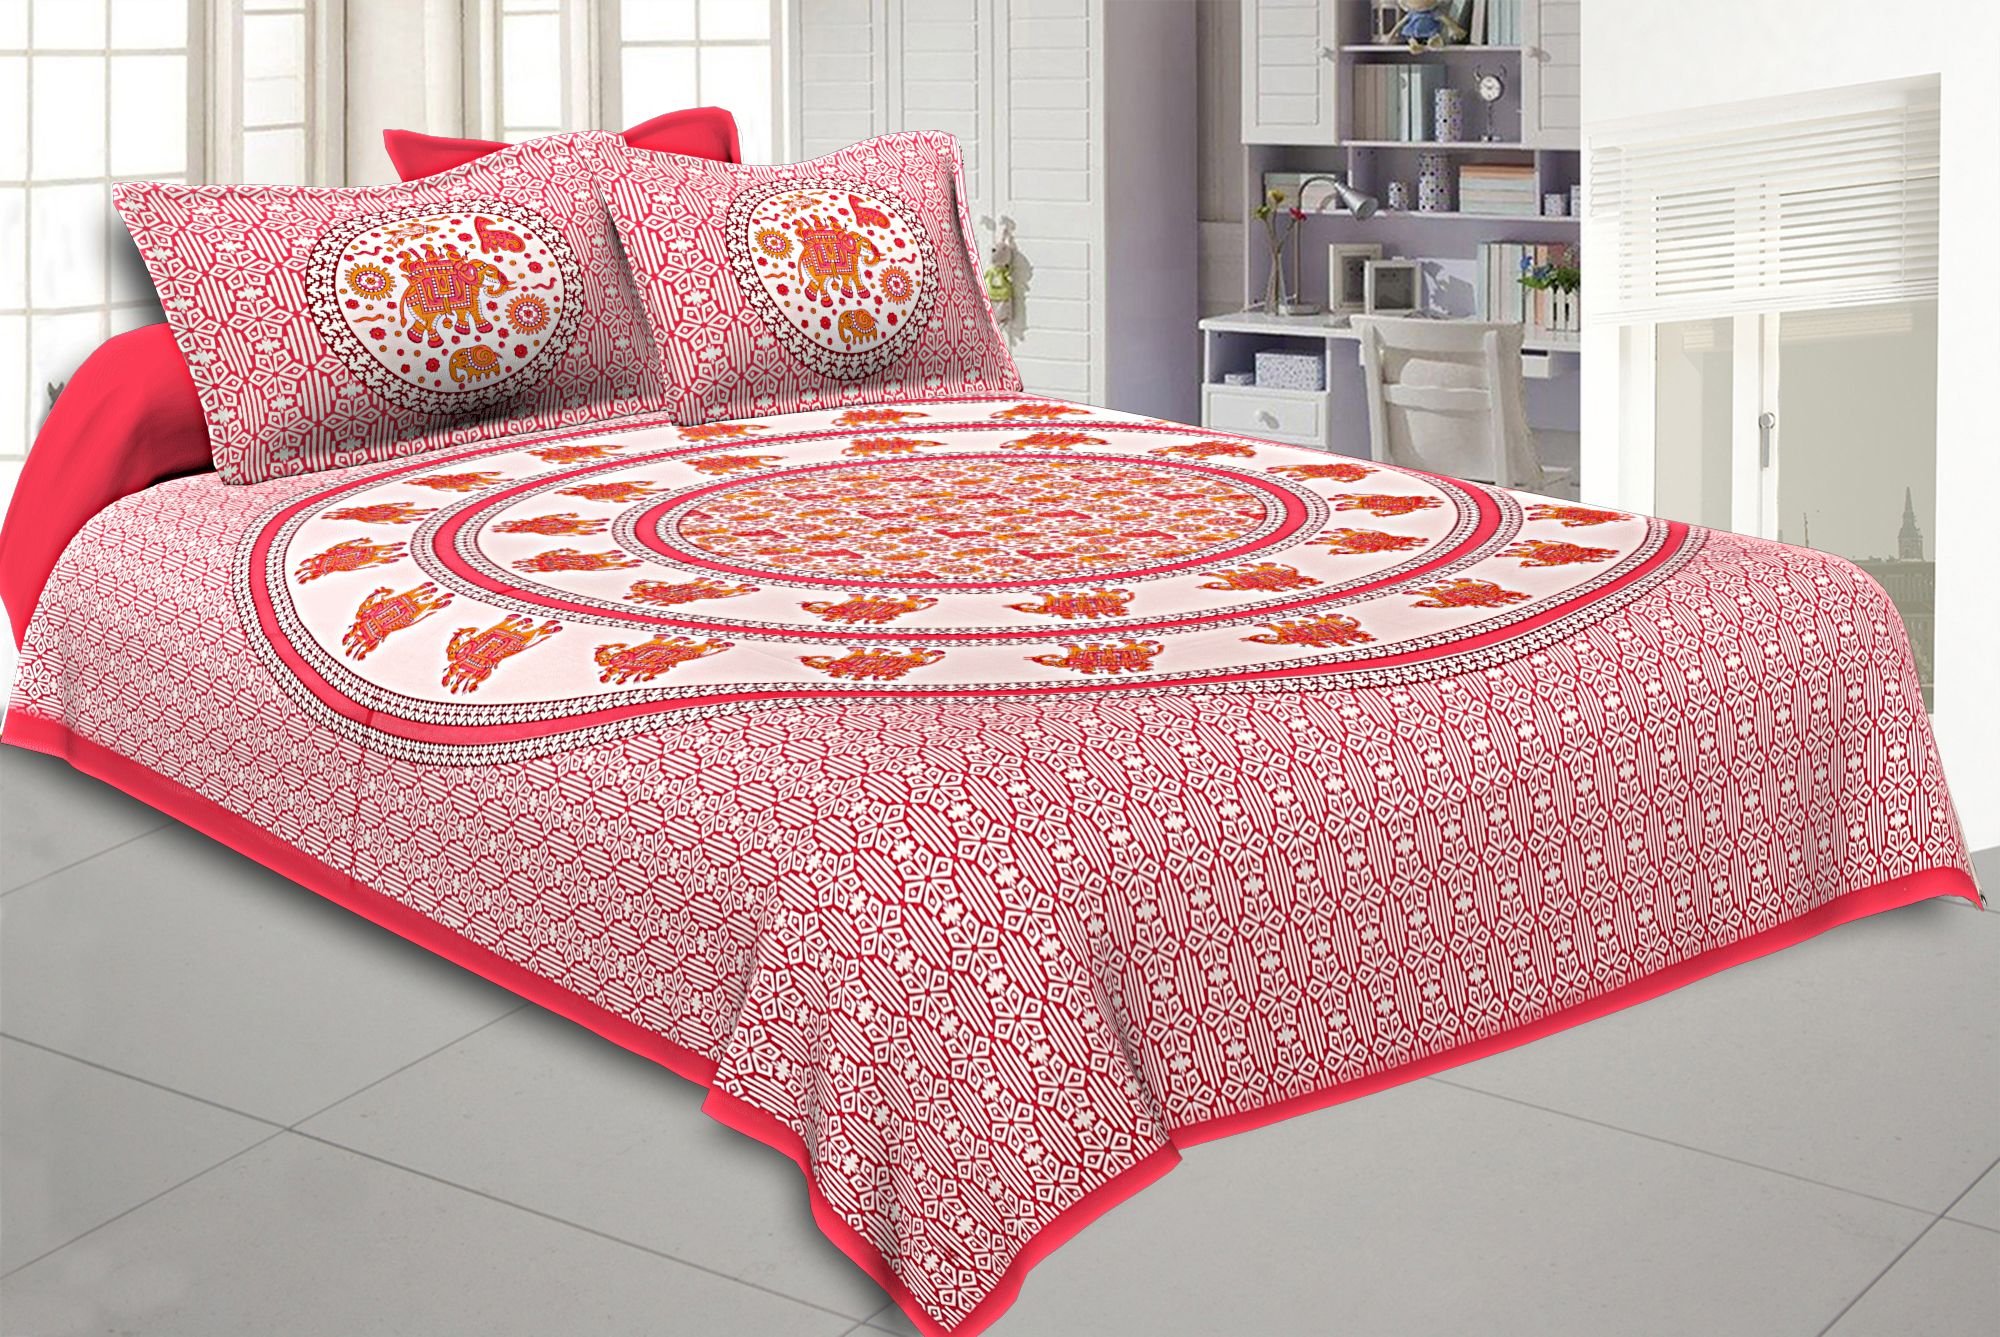 King Size Bedsheet Pink Border Circle Elephant Pattern Screen Print With Two Pillow Cover